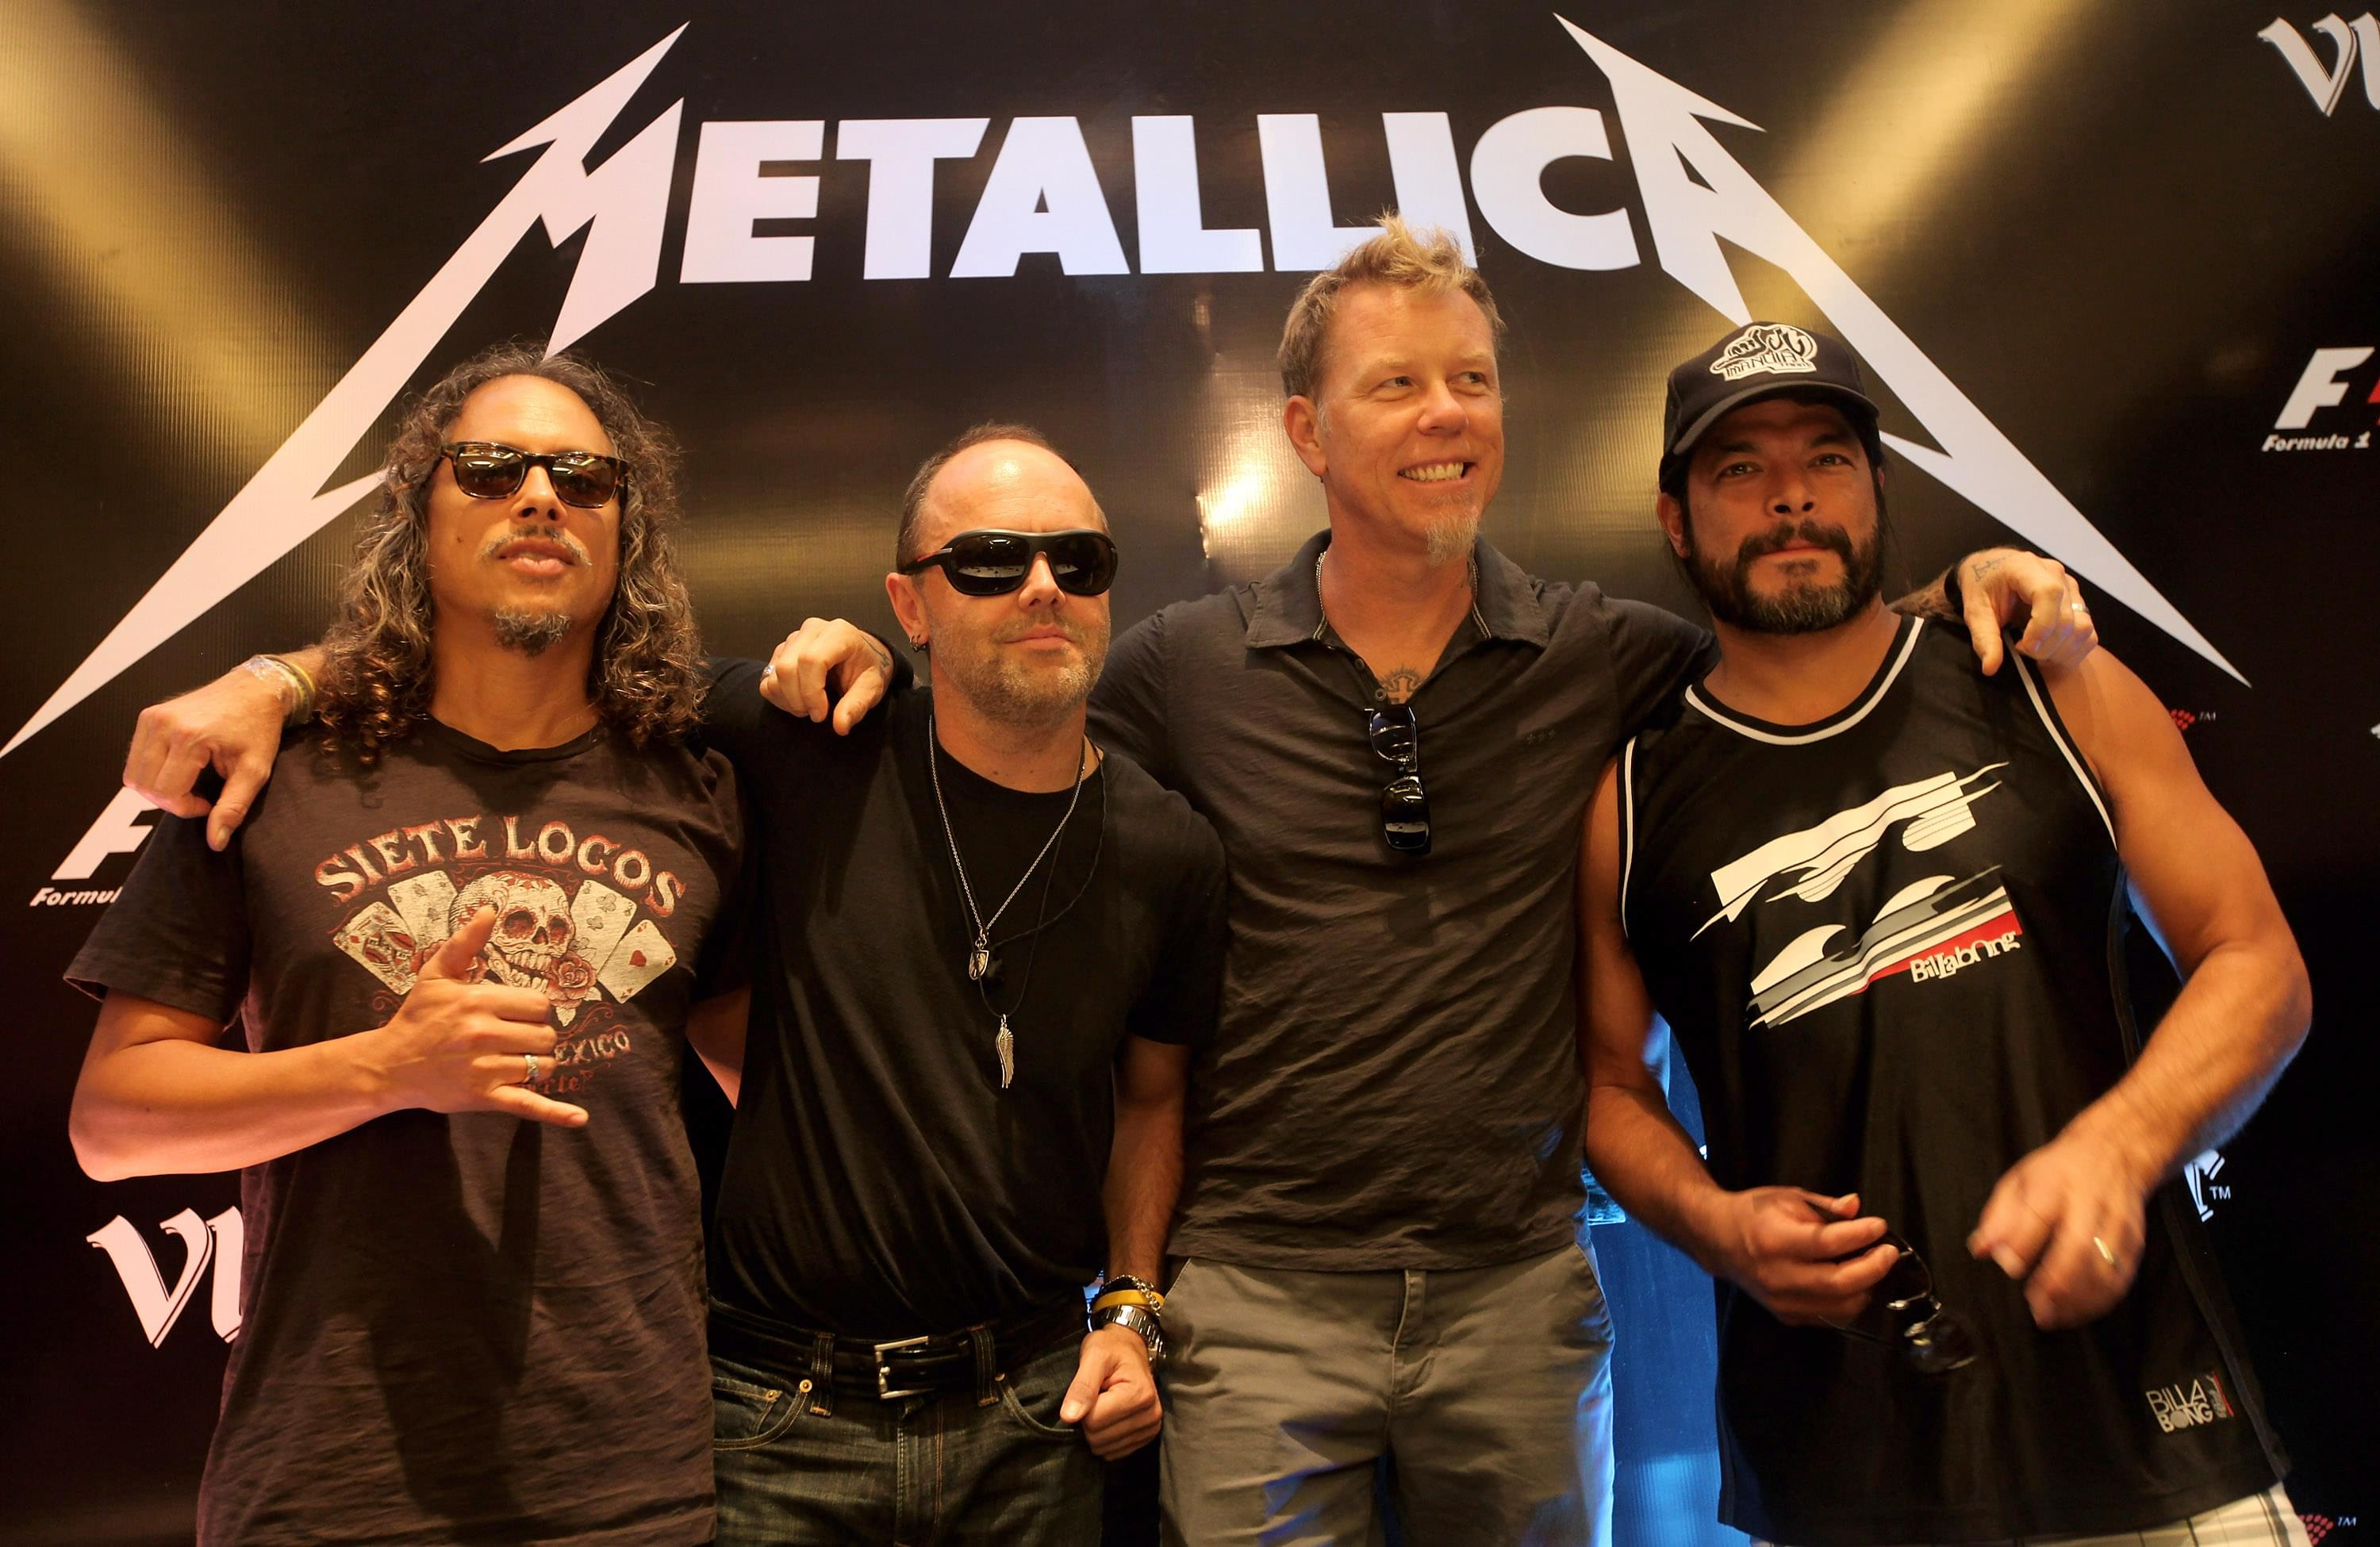 …and Metallica For All